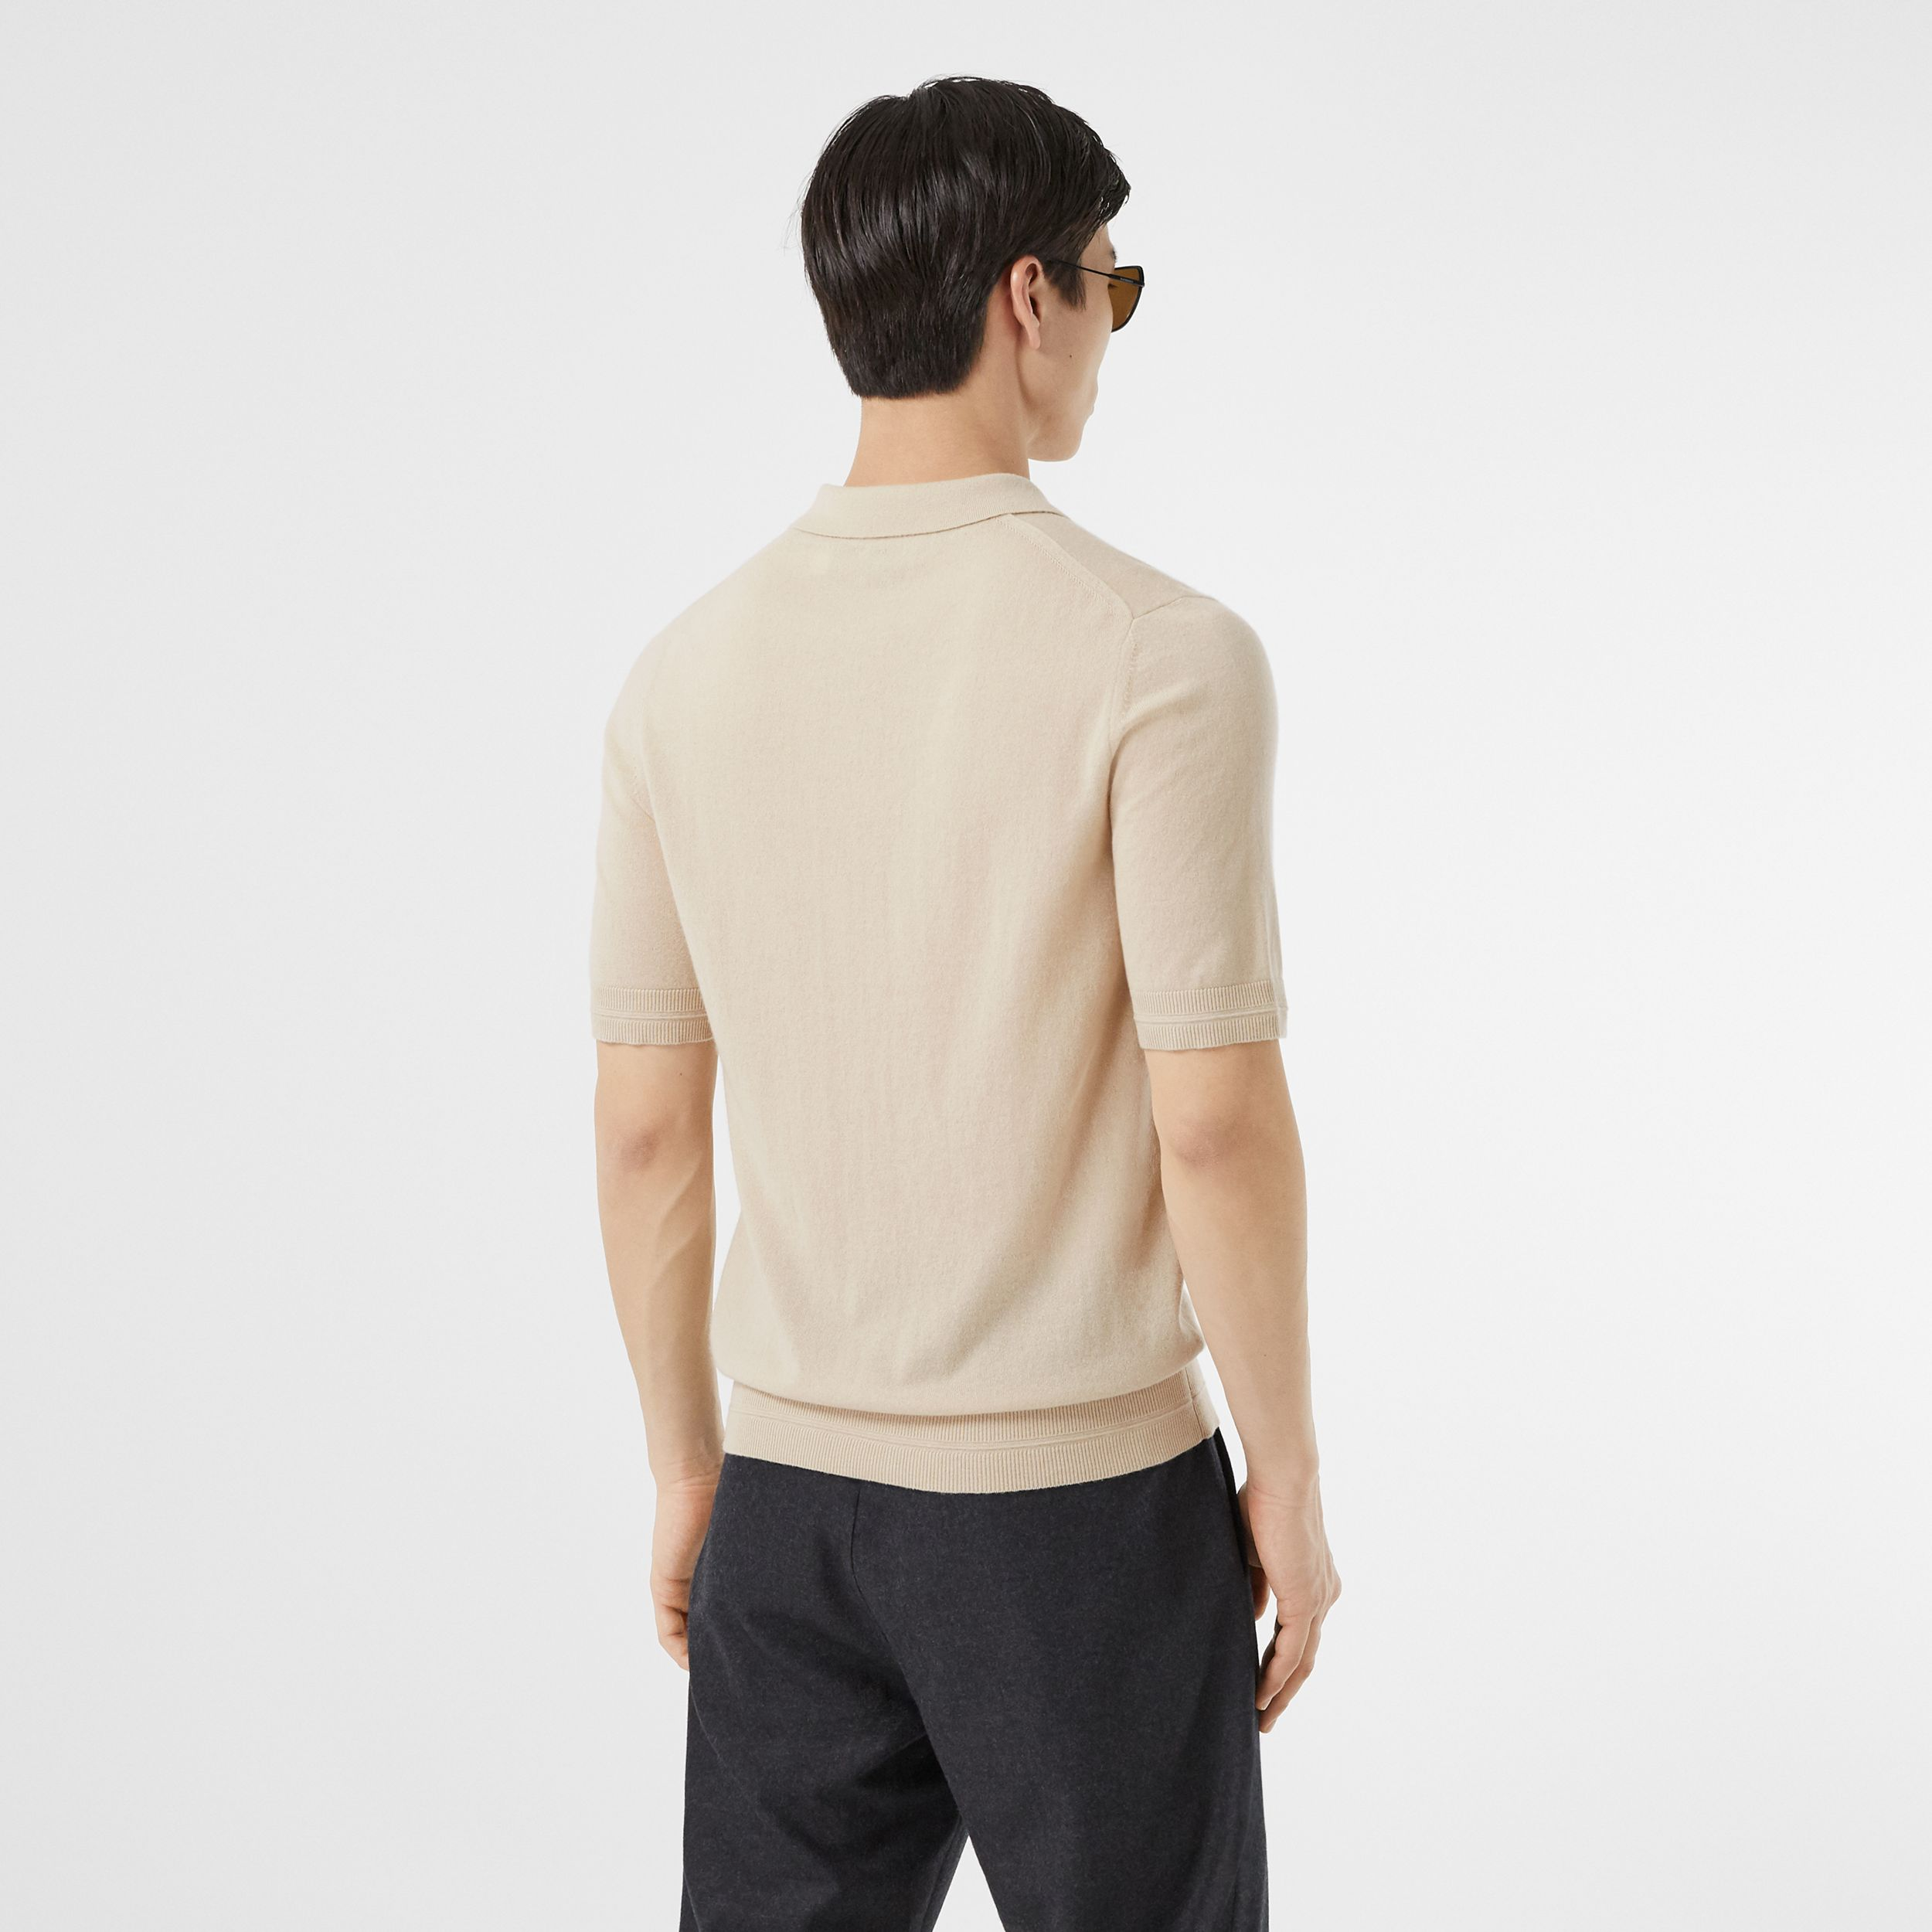 Monogram Motif Cashmere Polo Shirt in Soft Fawn - Men | Burberry - 3